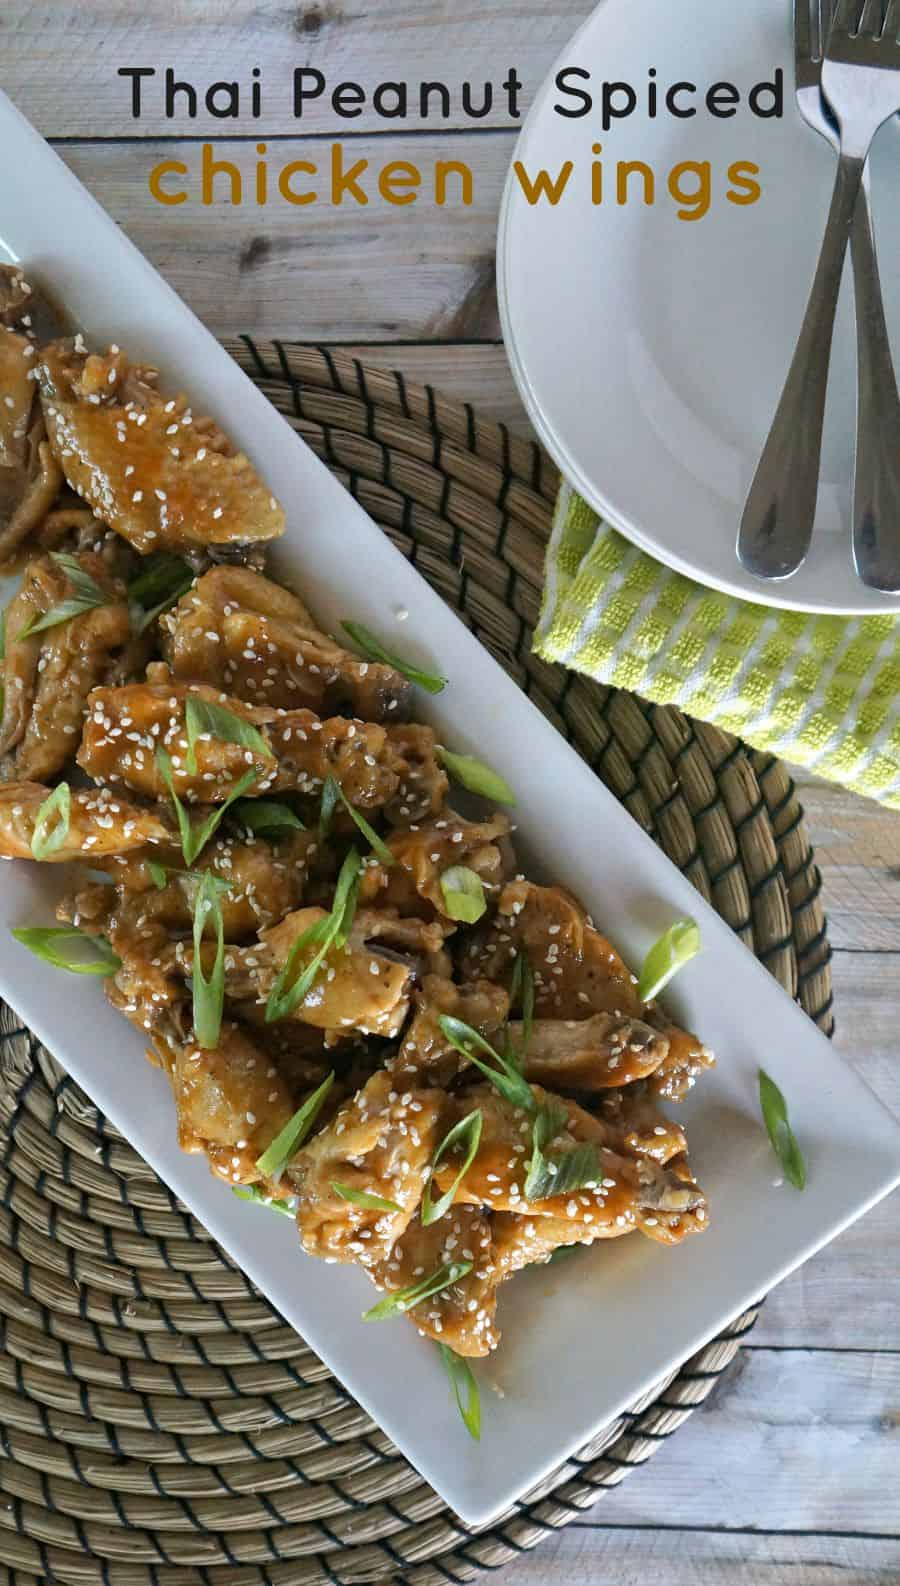 Thai-Peanut-Spiced-Chicken-Wings-A-Slow-Cooker-Recipe